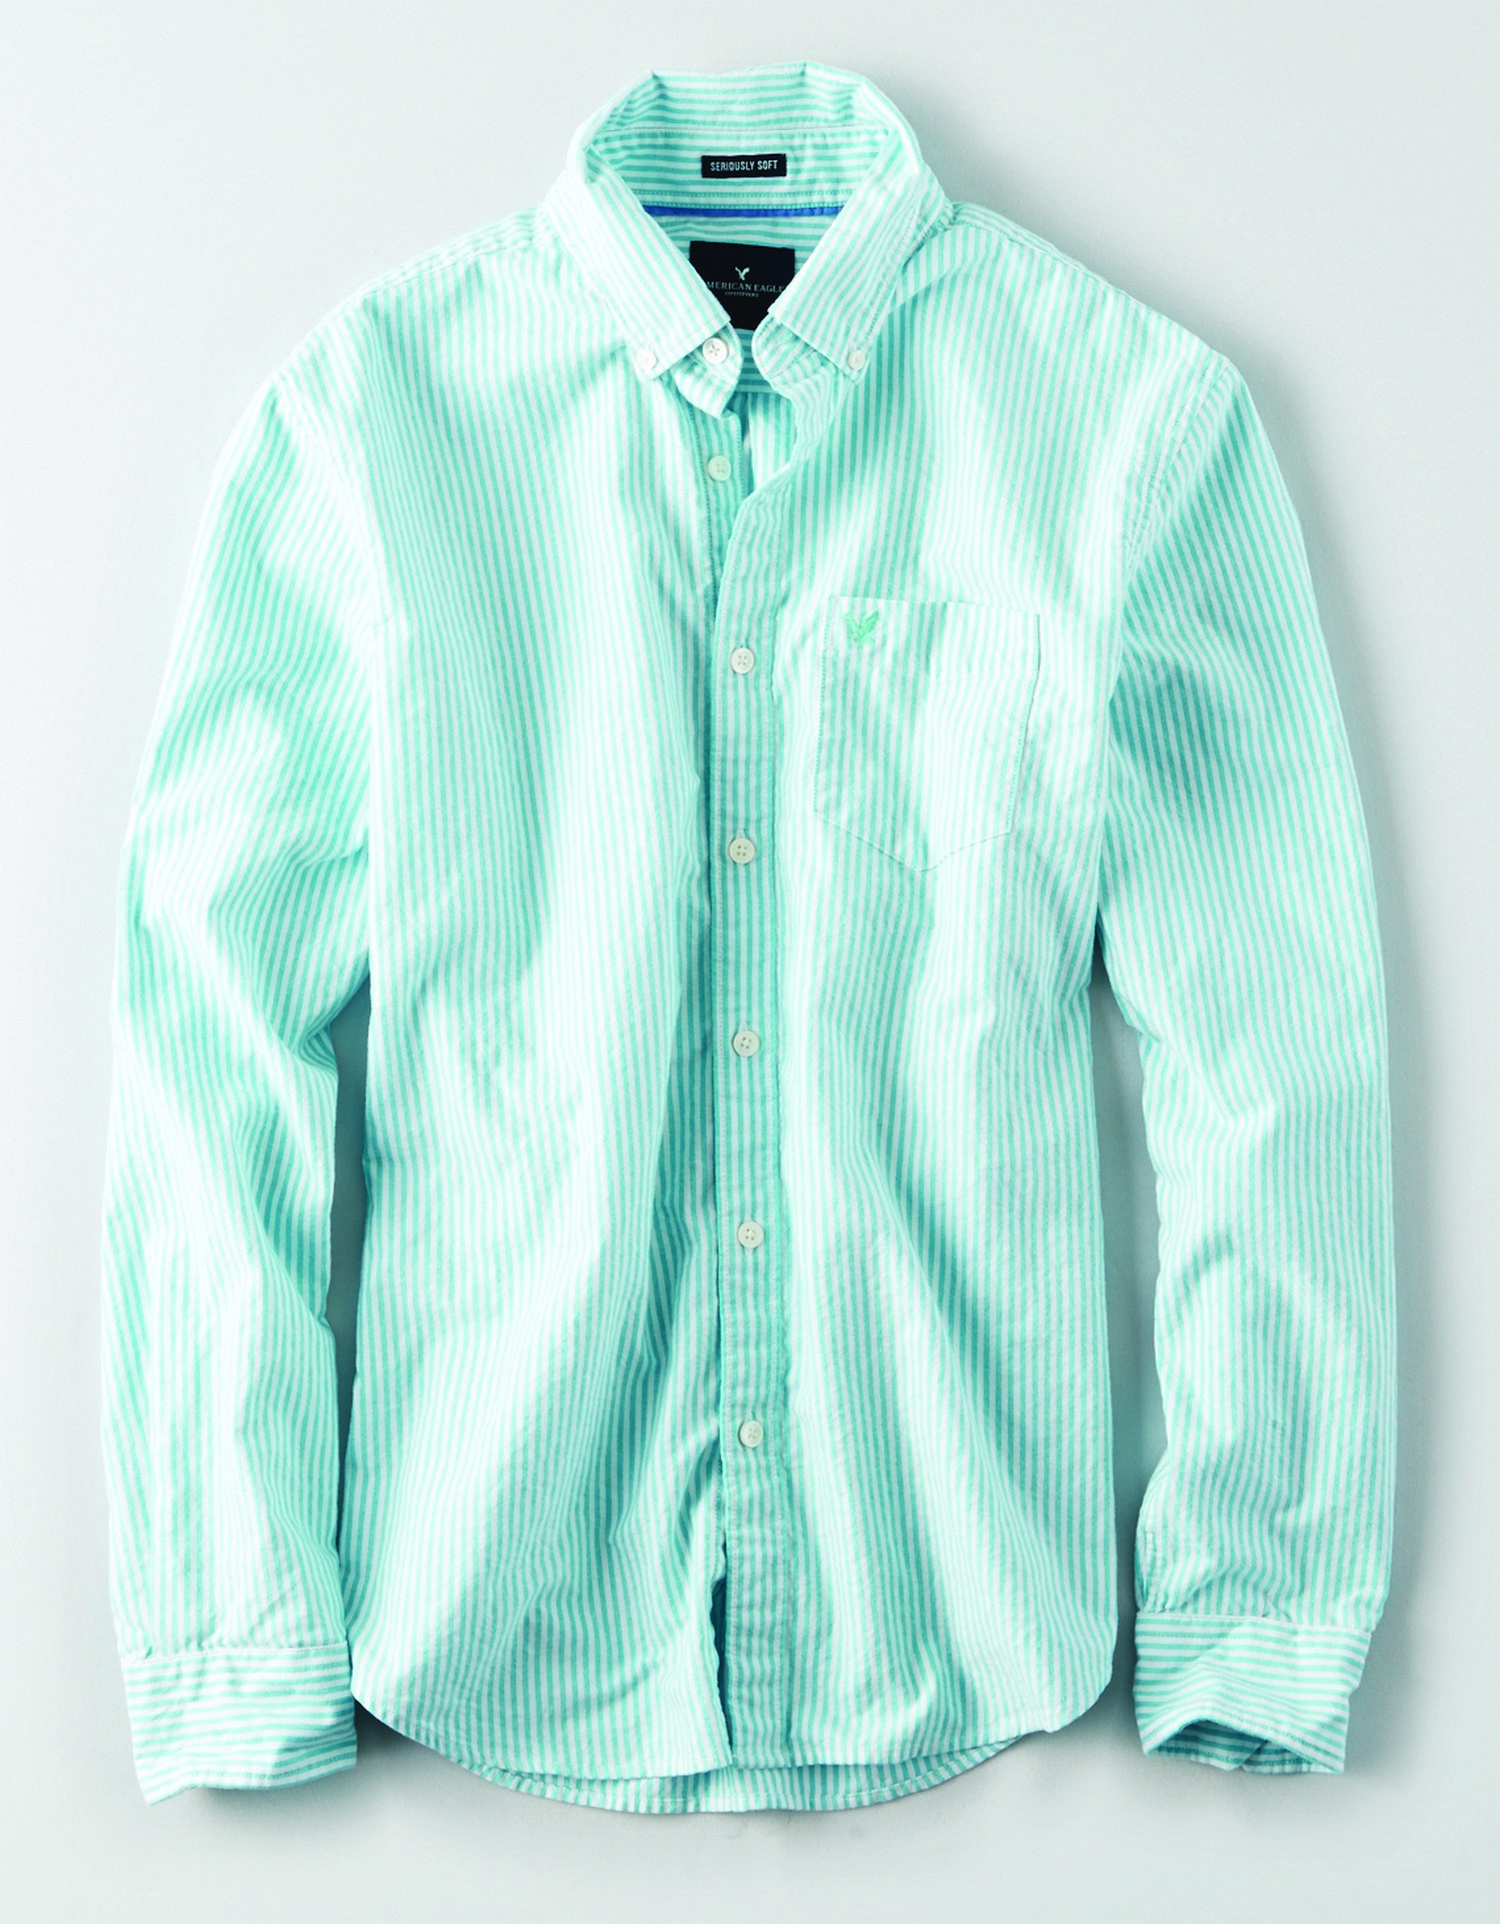 AE - INTL - Apparel - M-SF BENGEL STRIPE BD - Green and white vertical stripe - left chest pocket w/Green eagle - button collar JP